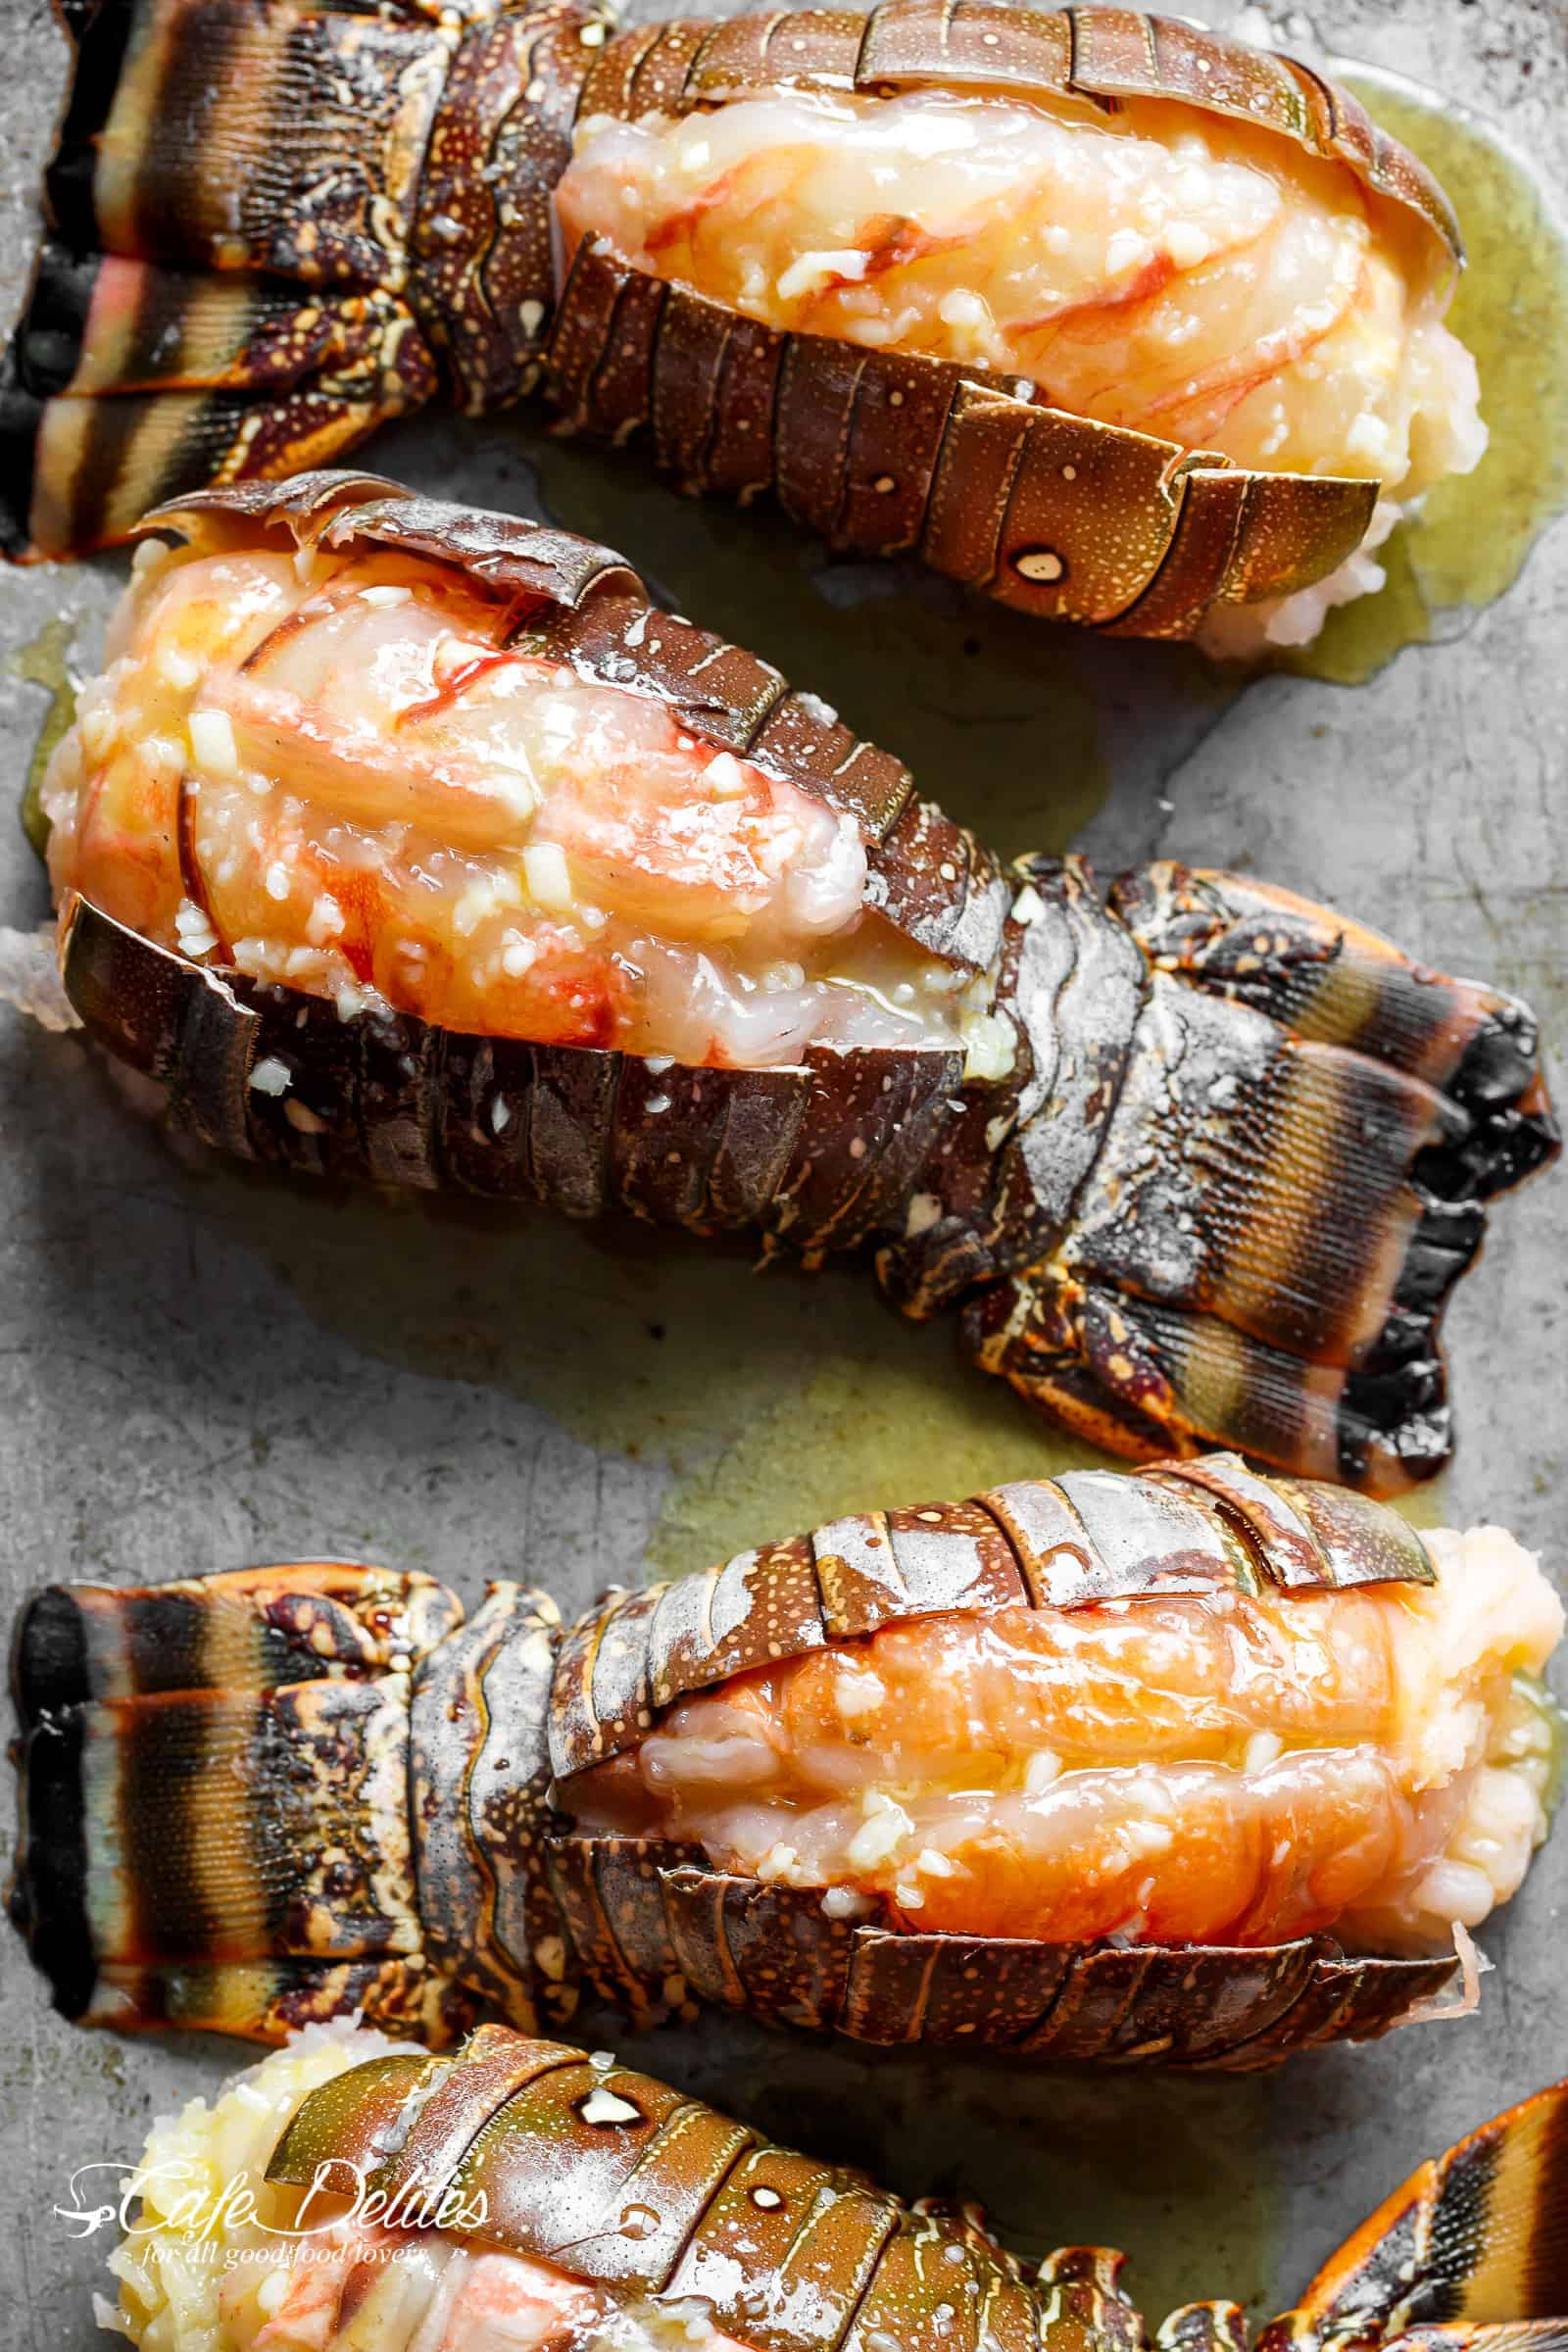 Sheet pan lobster tails to broil or oven bake | cafedelites.com